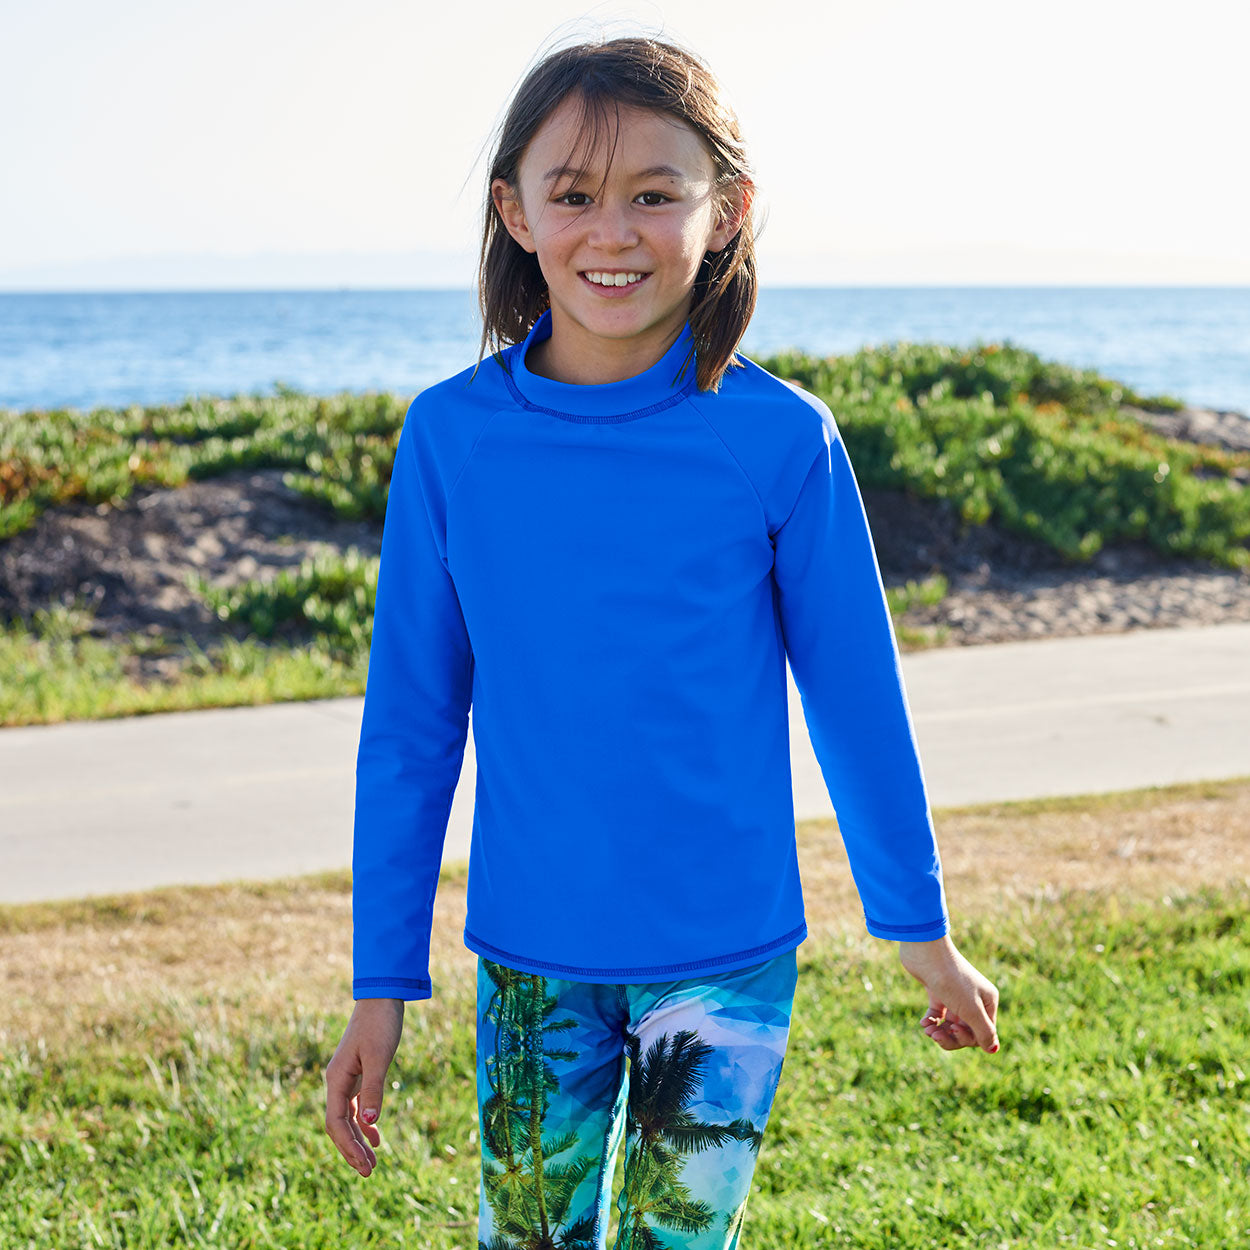 Royal Blue Kids Long Sleeve Rash Guard Top Upf50 Boys Girls Unisex Size 2 12 Girl Walking on the Grass Sunpoplife